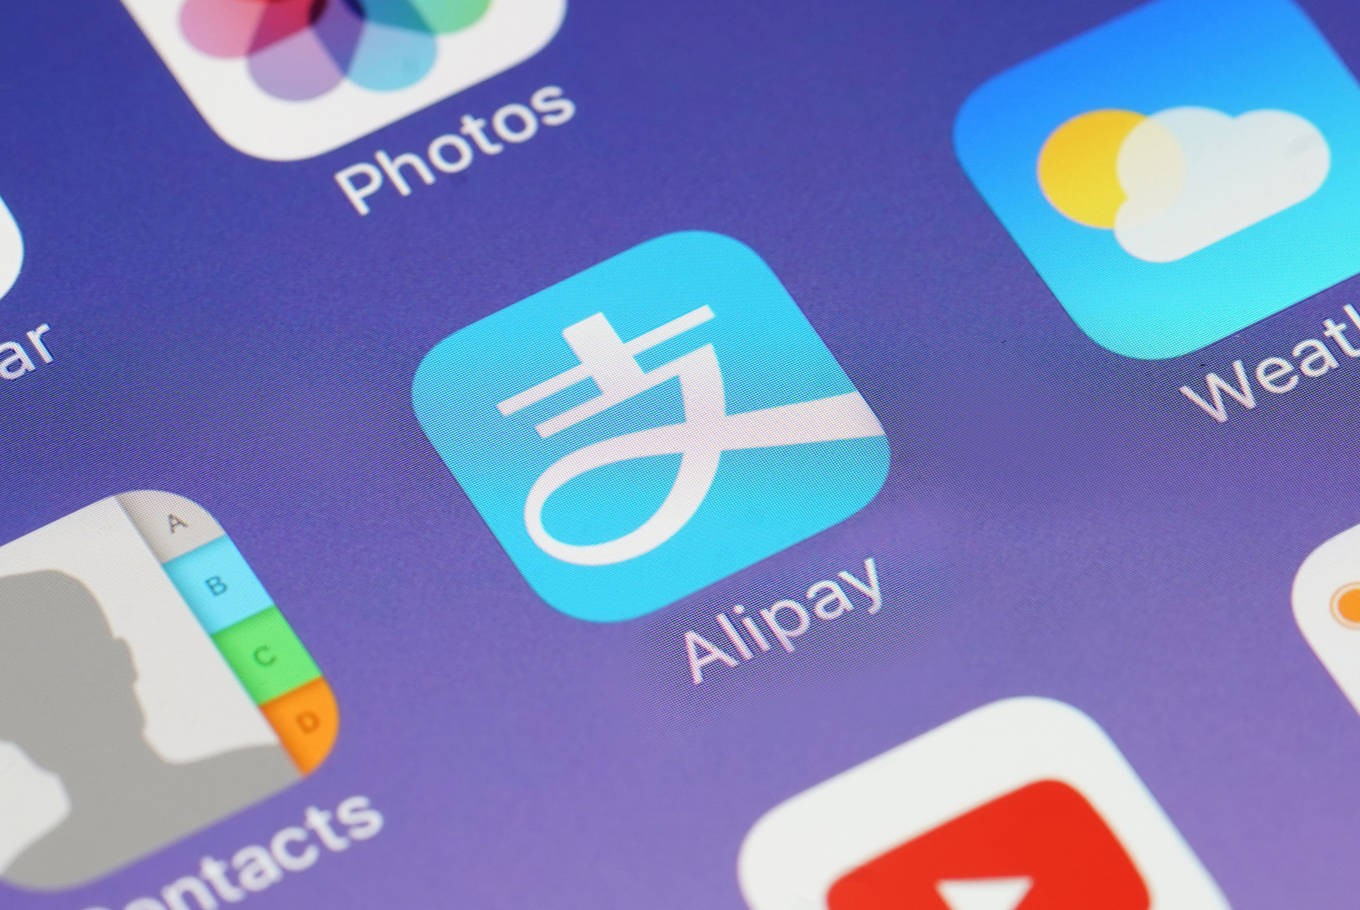 An illustration shows the smartphone menu icon for Alipay, a popular digital payment platform in China that is owned by the Alibaba Group. Image: Shutterstock.com/charnsitr